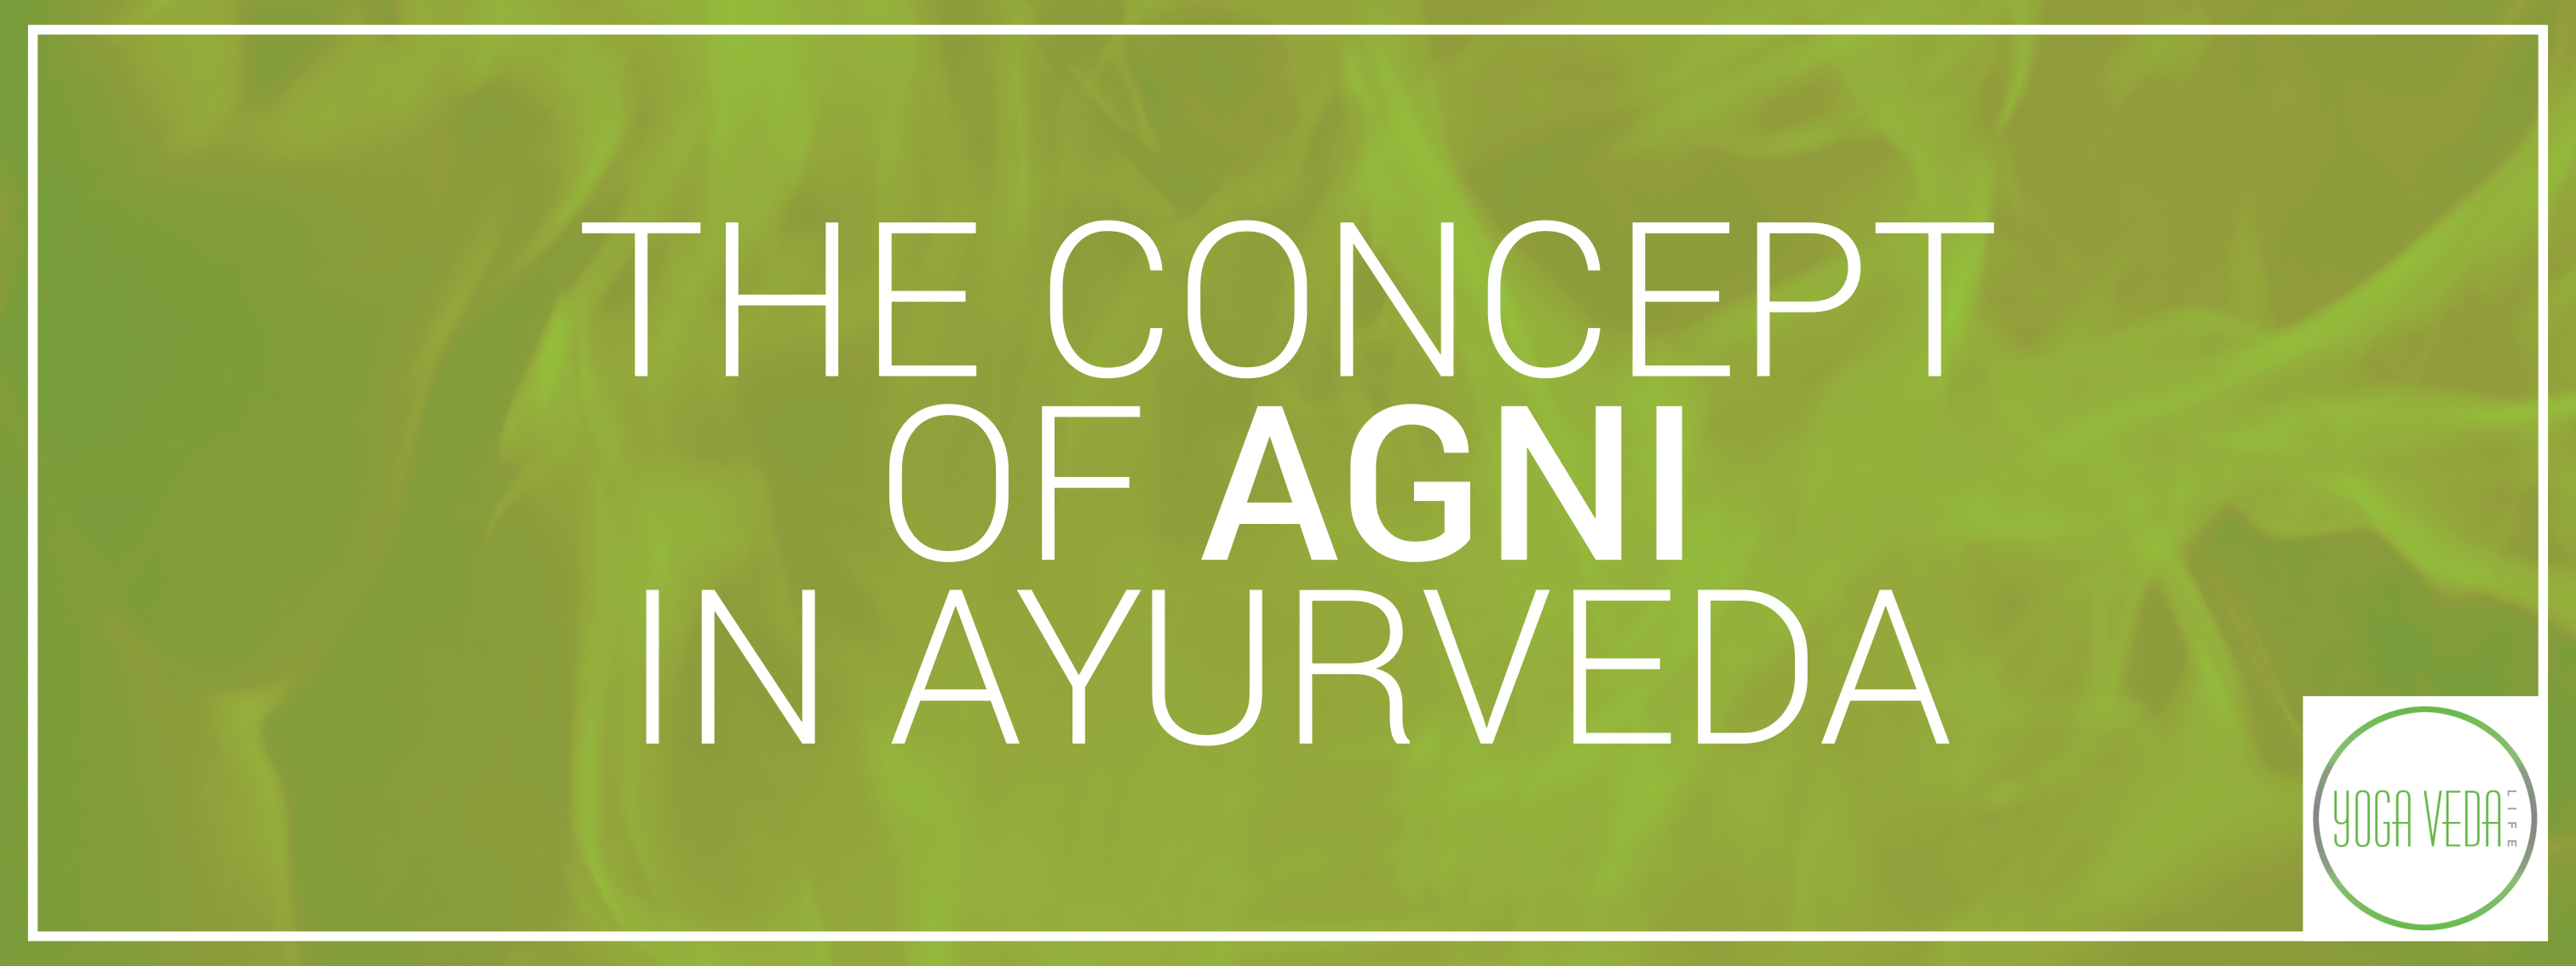 The Concept of Agni in Ayurveda - Blog post(1)